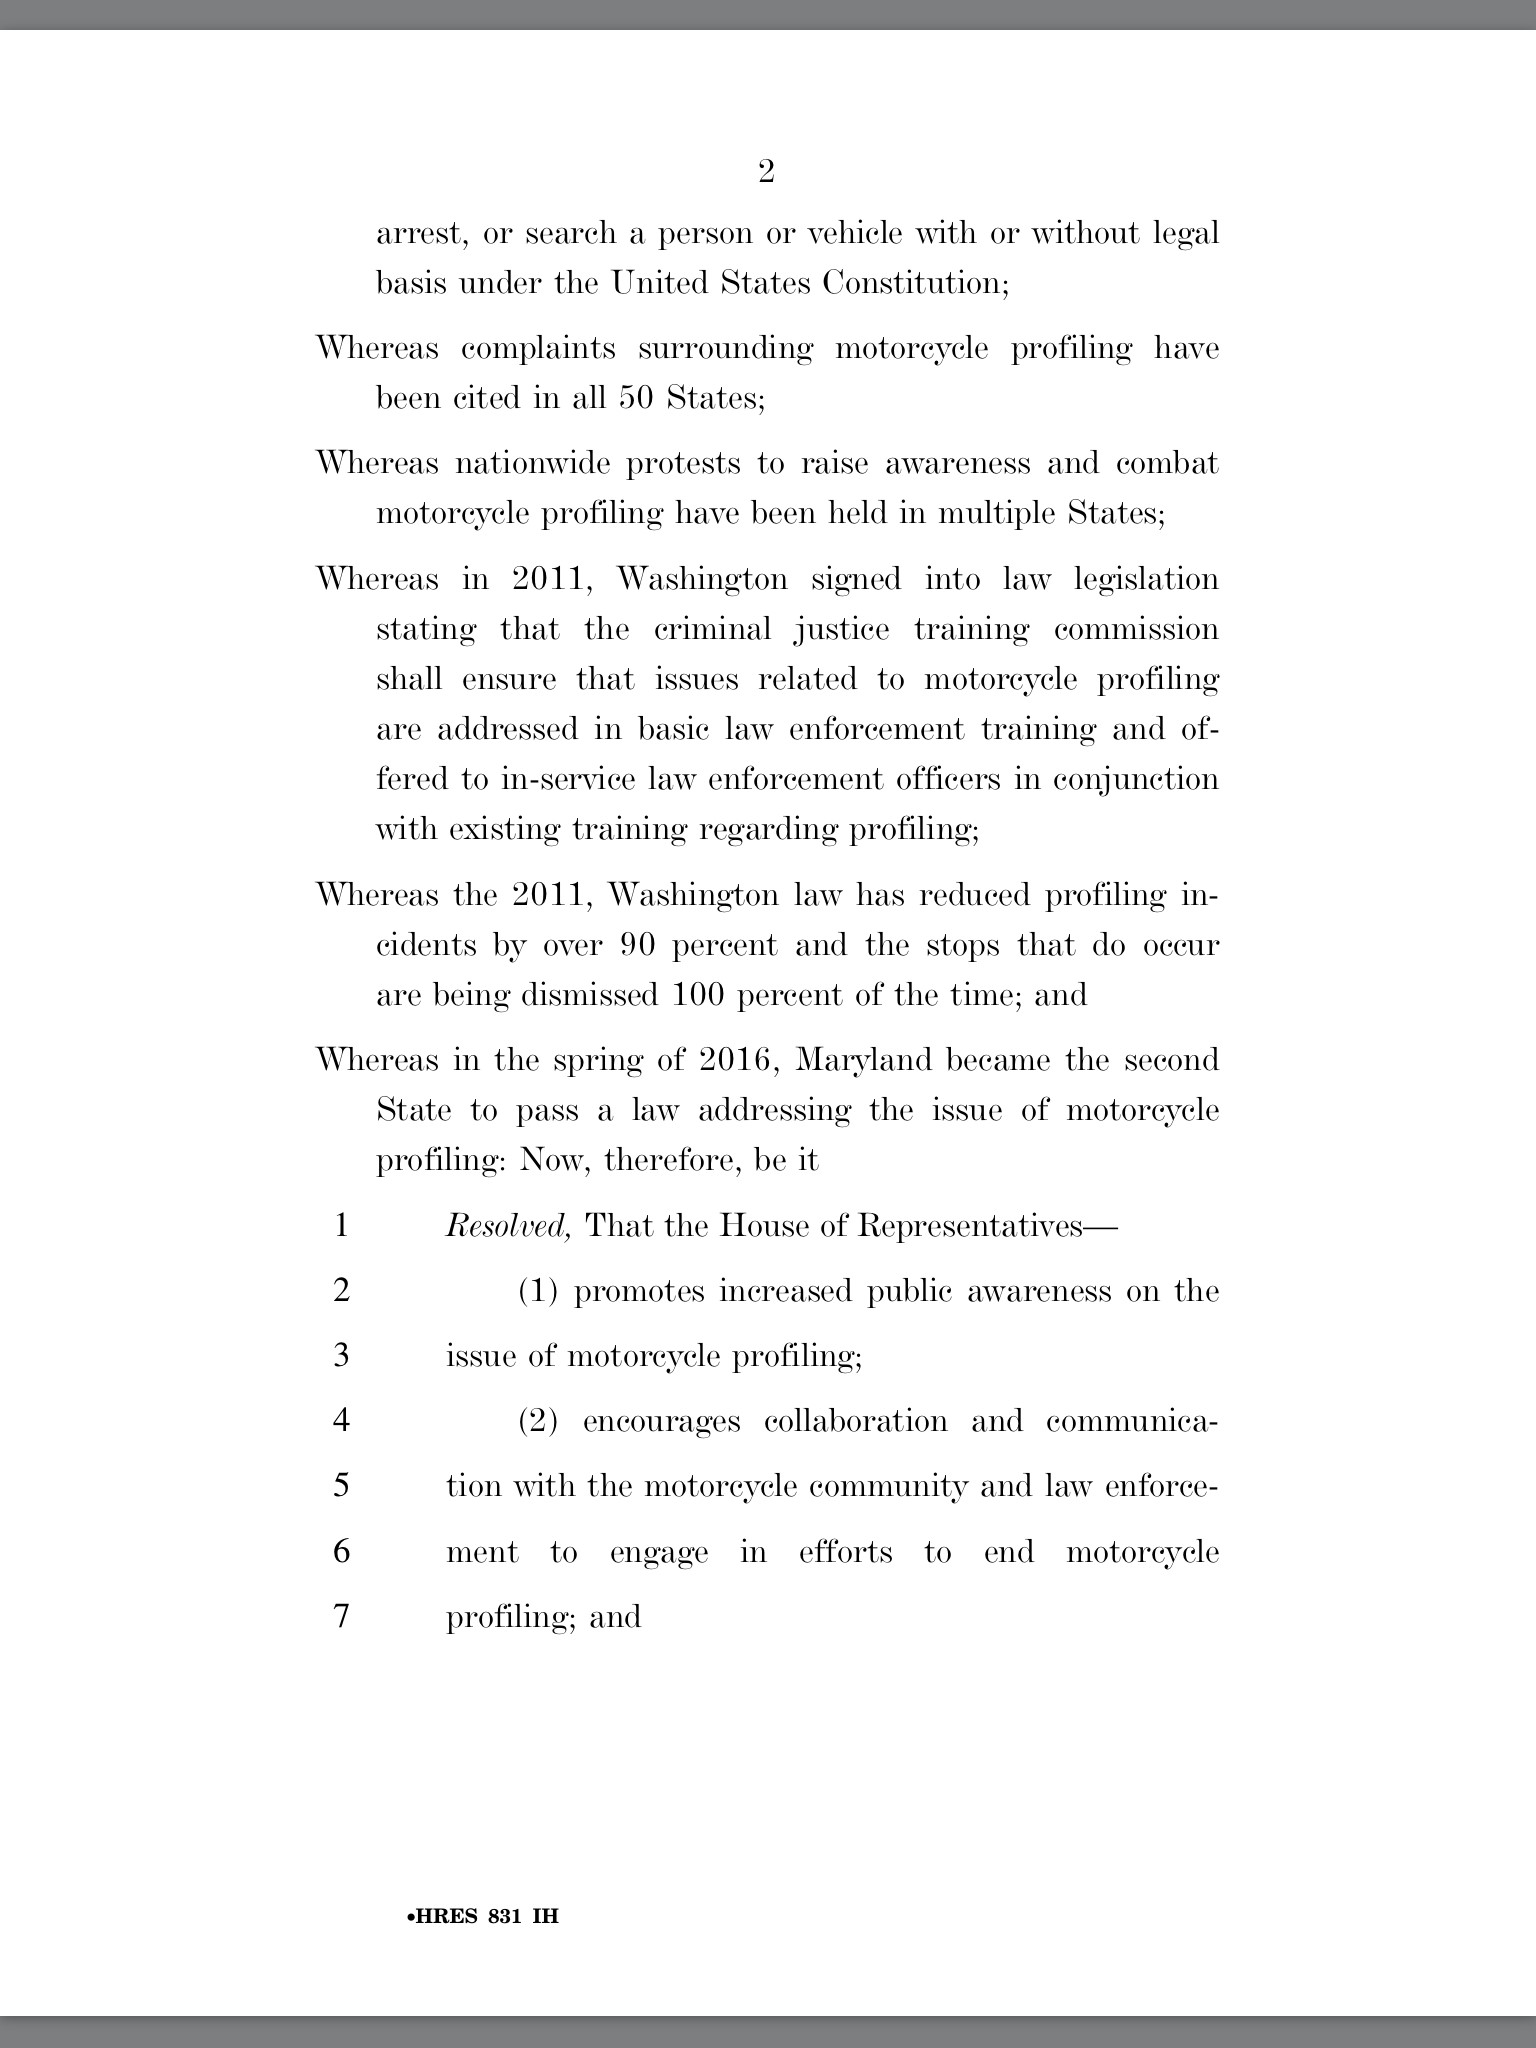 US-House-Resolution-831-page2